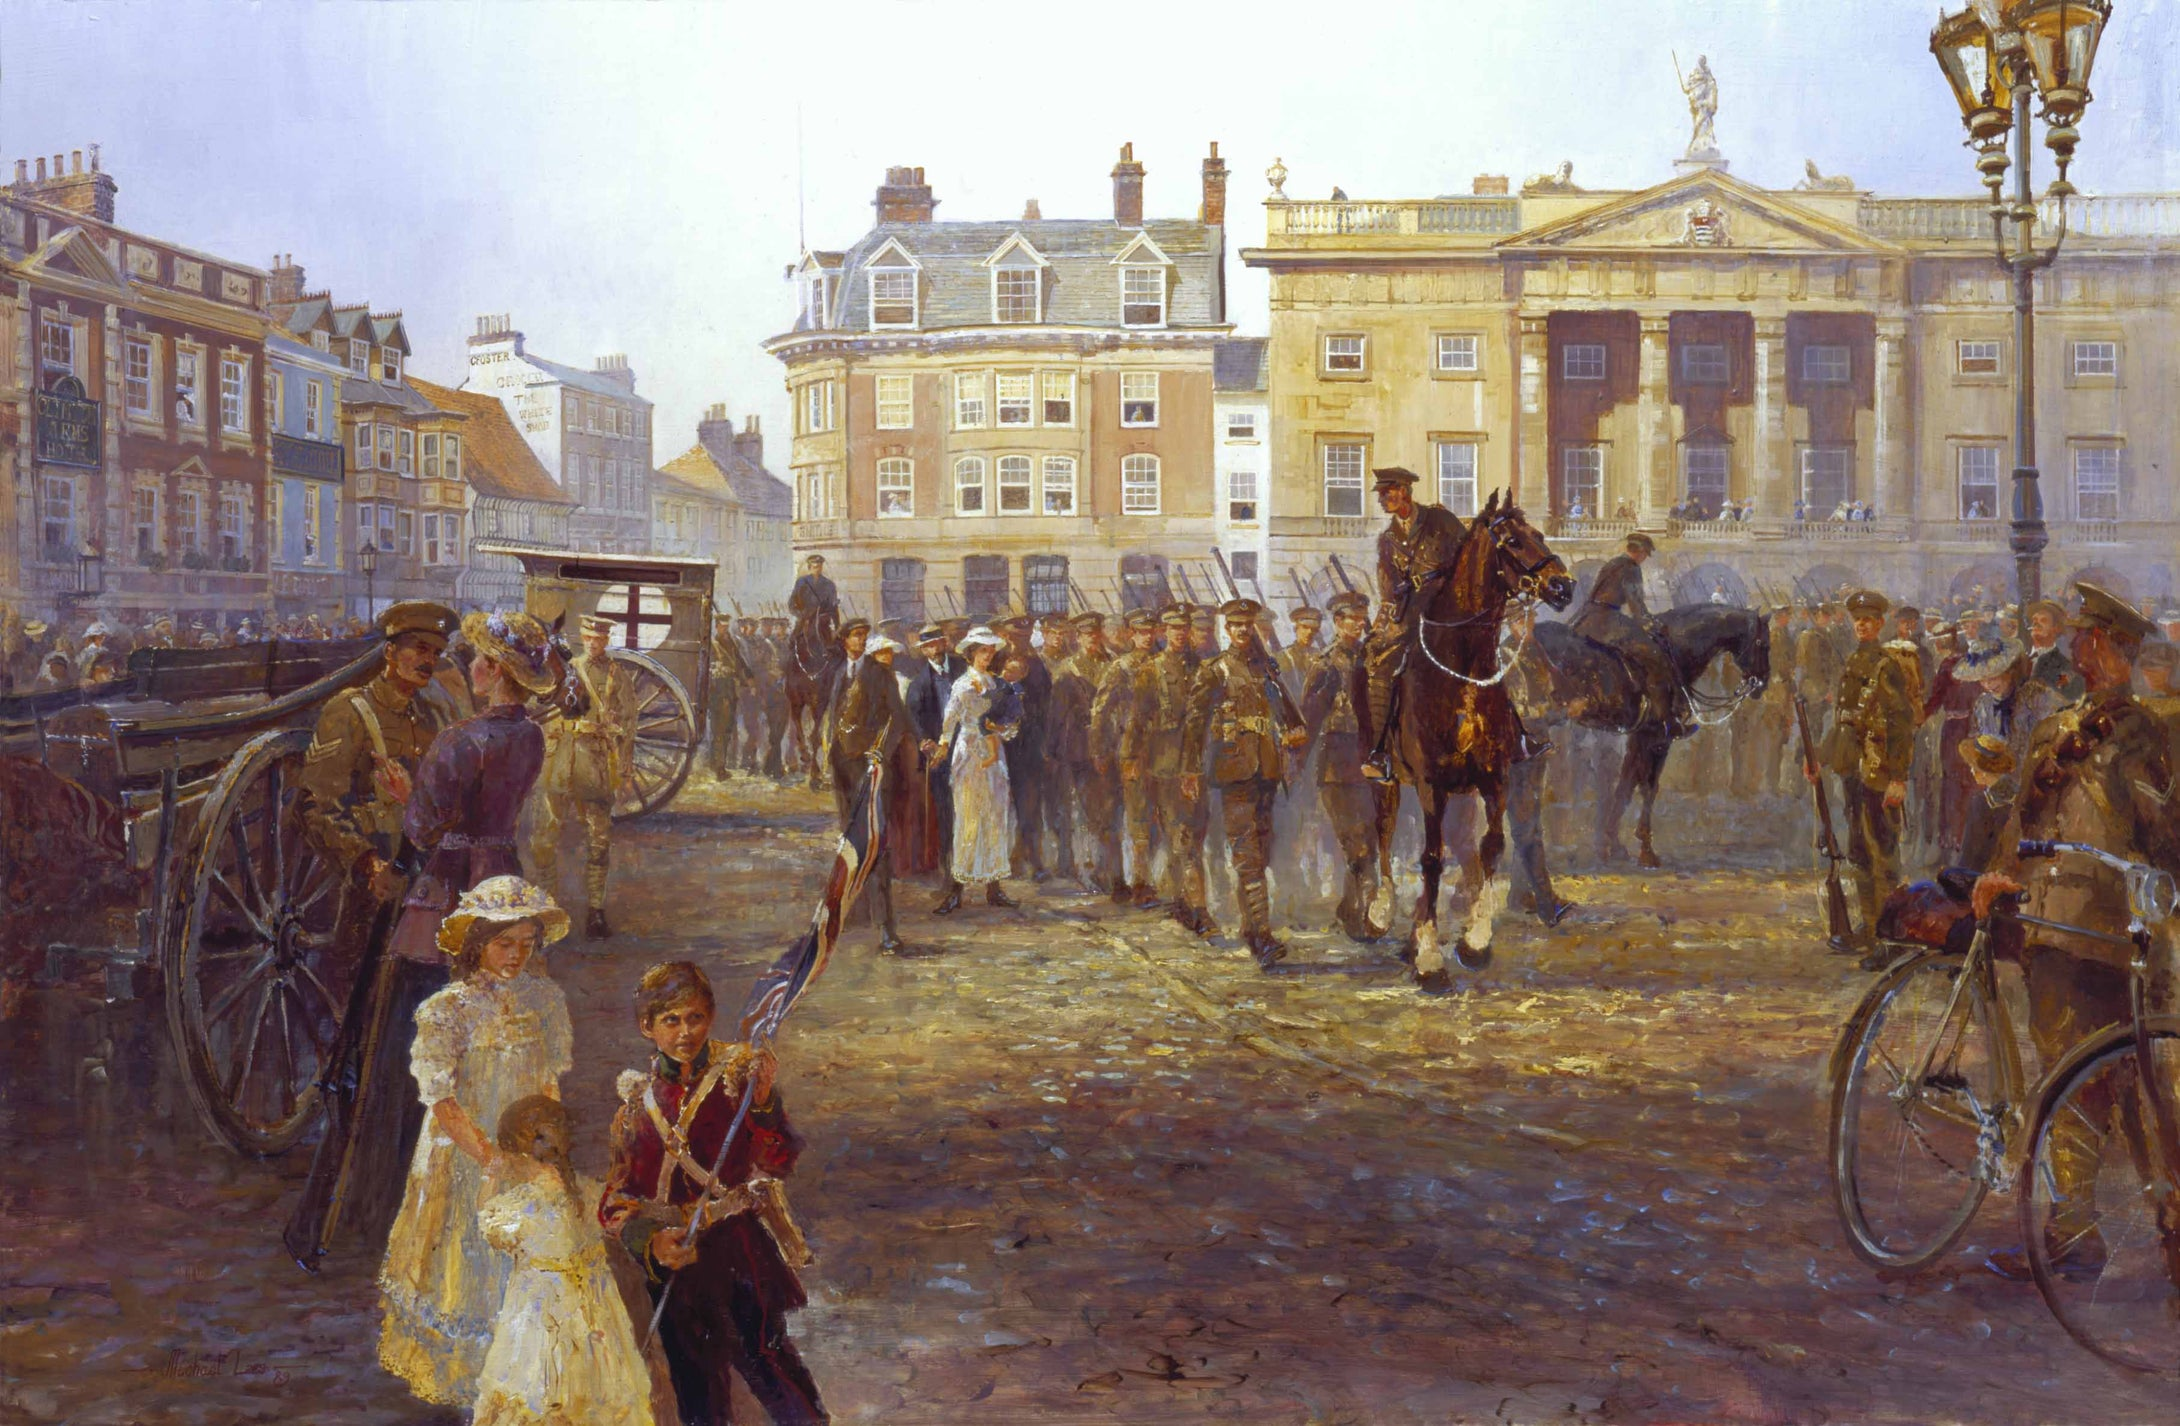 The Worcestershire and Sherwood Forester mustering in Newark Square. 'Territorials to war.'